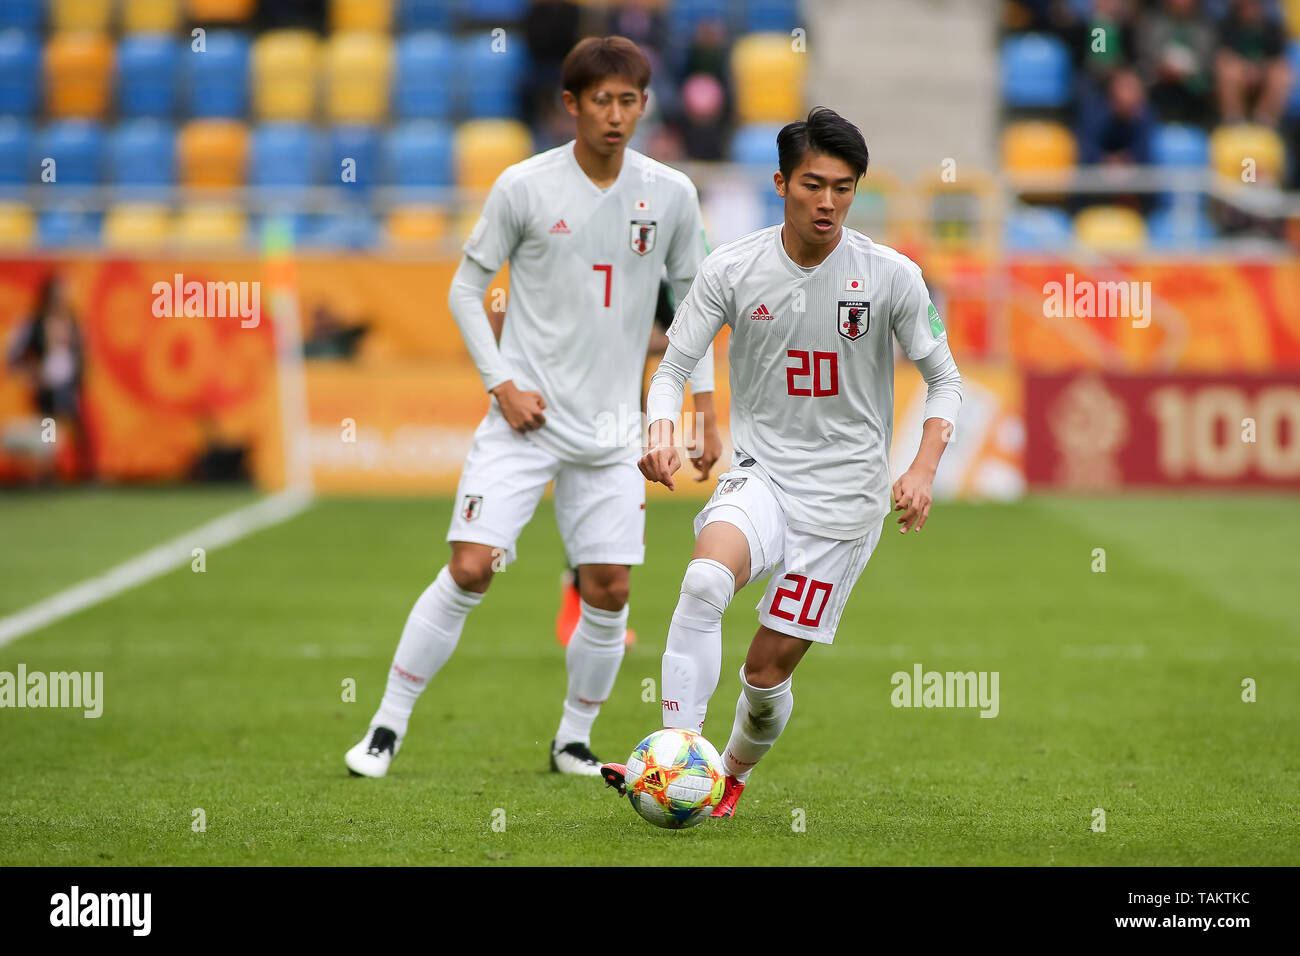 Gdynia Stadium, Gdynia, Poland - 26th May, 2019: Keito Nakamura from Japan seen in action during FIFA U-20 World Cup match between Mexico and Japan (GROUP B) in Gdynia. (Final score; Mexico 0:3 Japan) - Stock Image